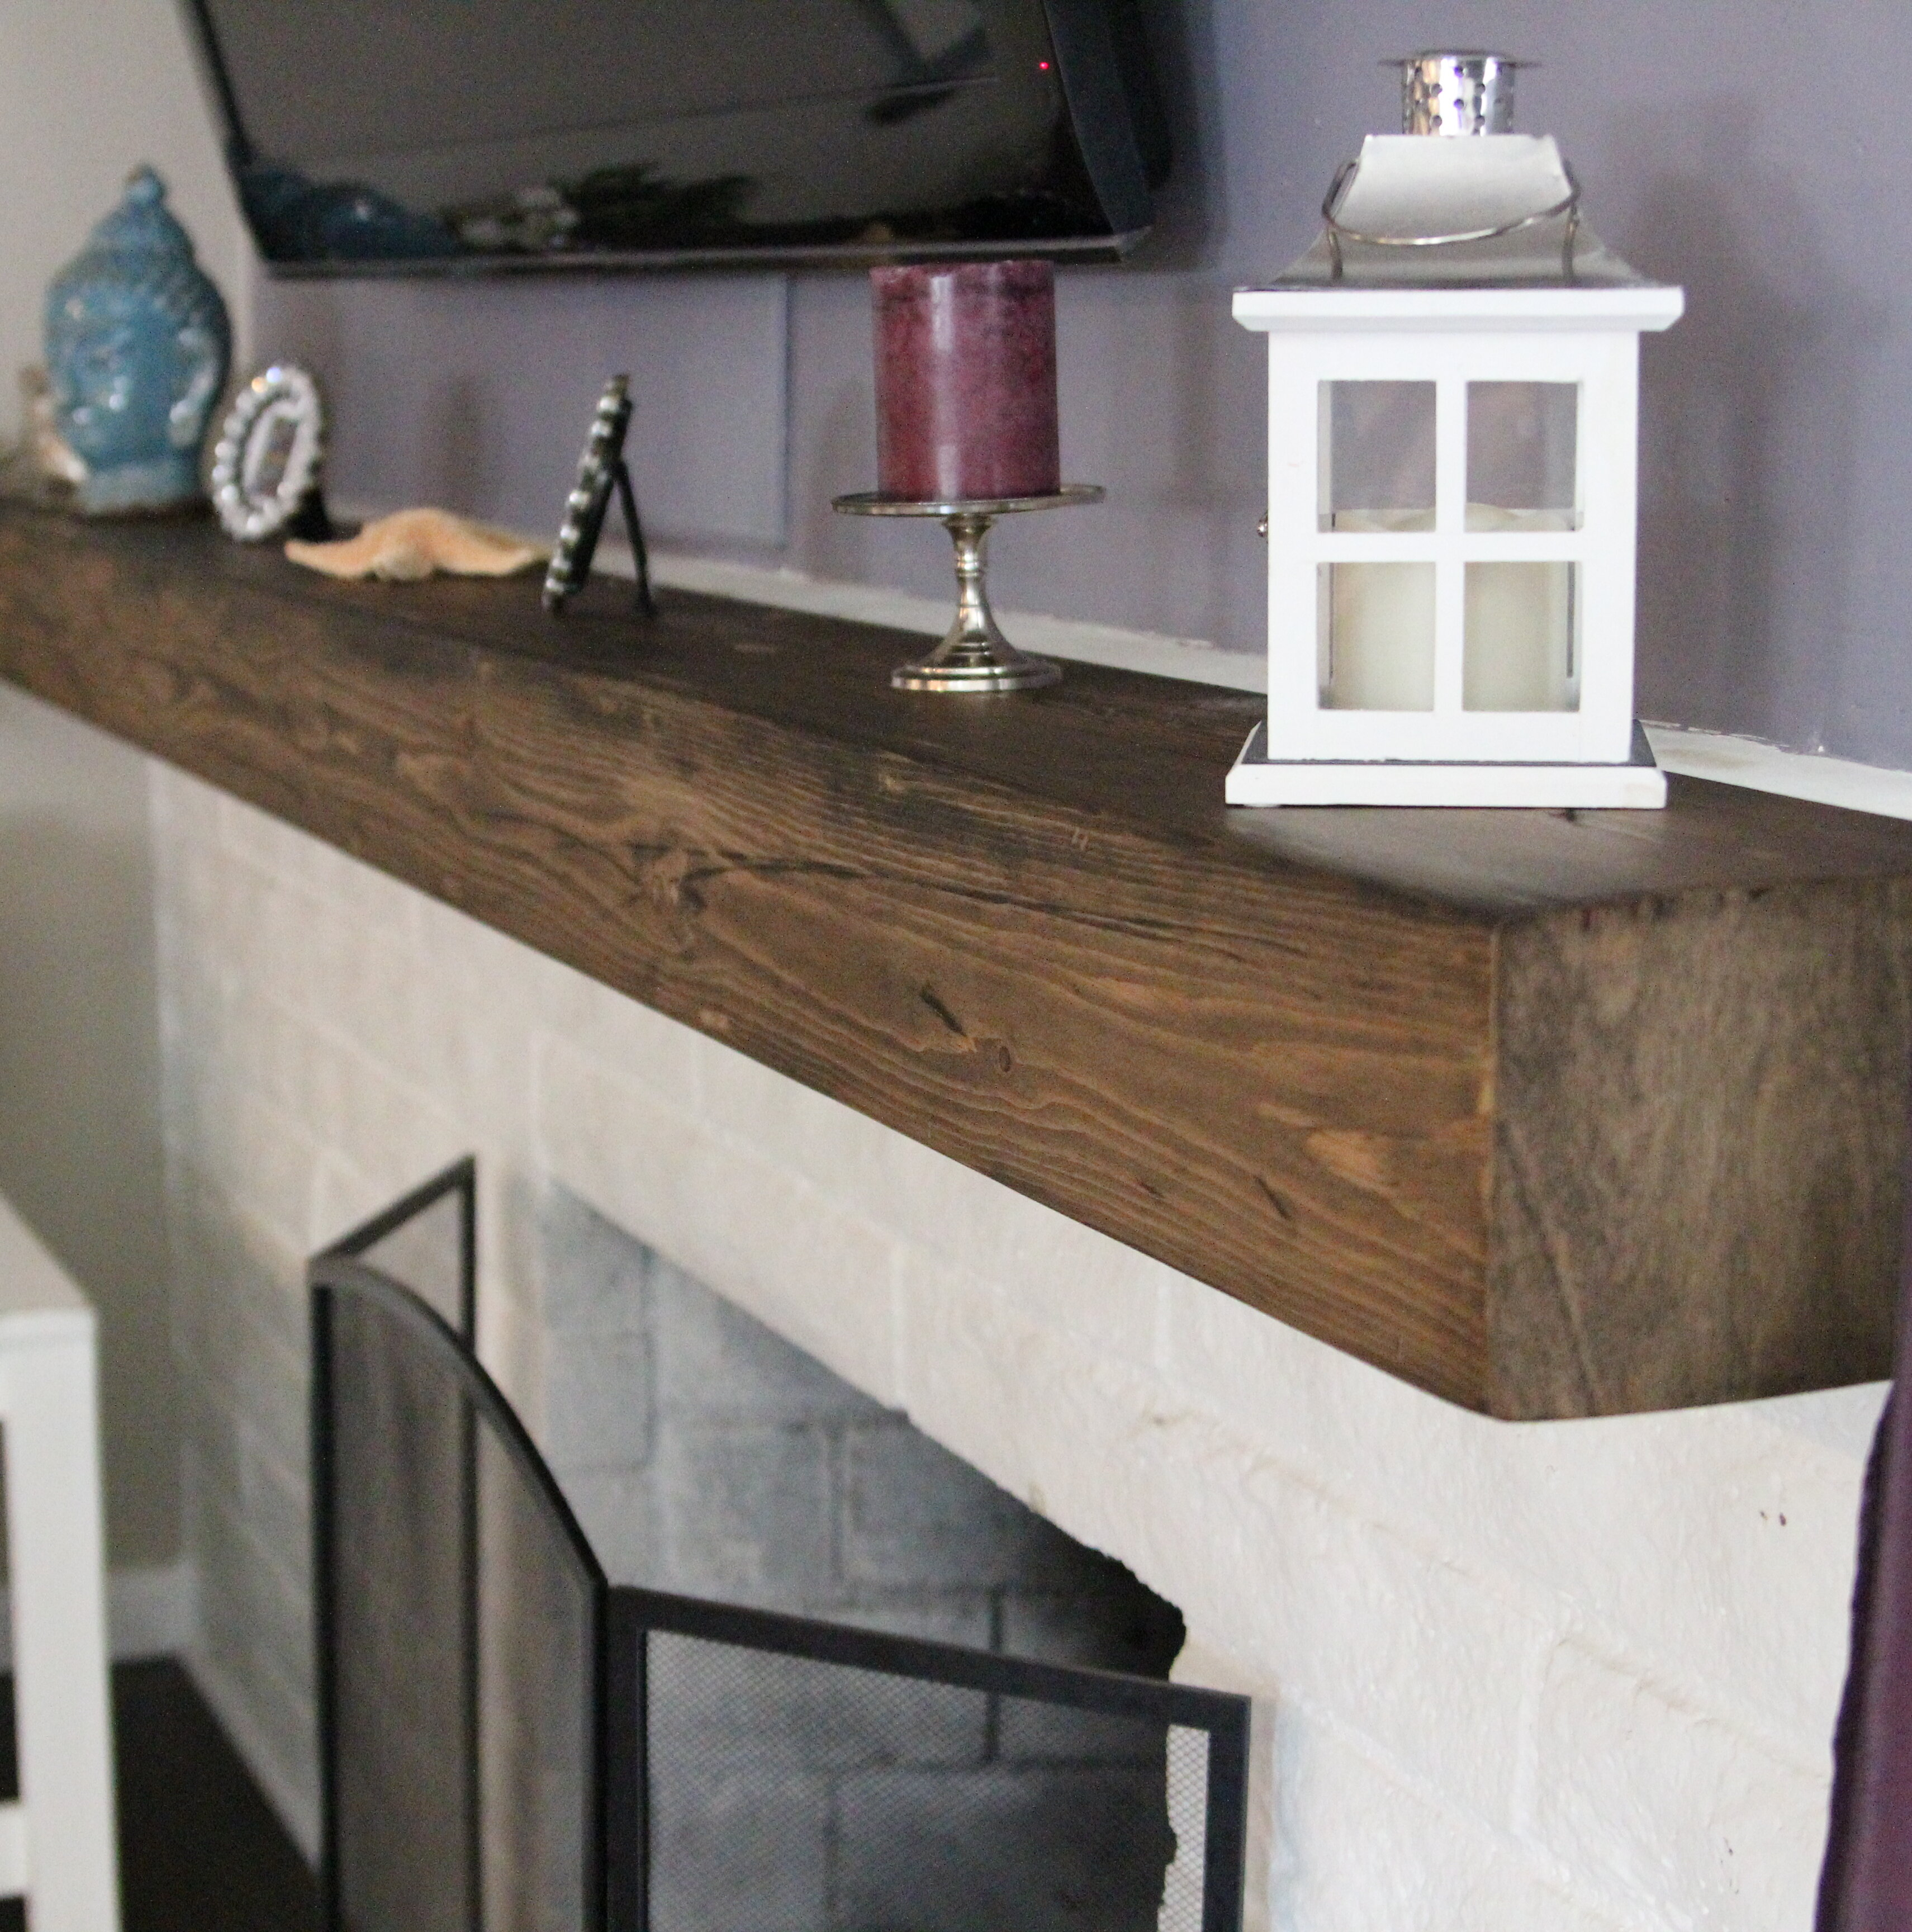 Midwood Designs Fireplace Mantel Shelf & Reviews | Wayfair on rustic column ideas, rustic bookshelves ideas, rustic cooler ideas, rustic fireplaces, rustic kitchen ideas, rustic home ideas, rustic french ideas, rustic bookcase ideas, rustic modern ideas, rustic clock ideas, rustic bracket ideas, rustic screen ideas, rustic tree mantels, rustic outdoor fall decor, rustic style ideas, rustic antique ideas, rustic thanksgiving ideas, rustic carpet ideas, rustic stove ideas, rustic dresser ideas,